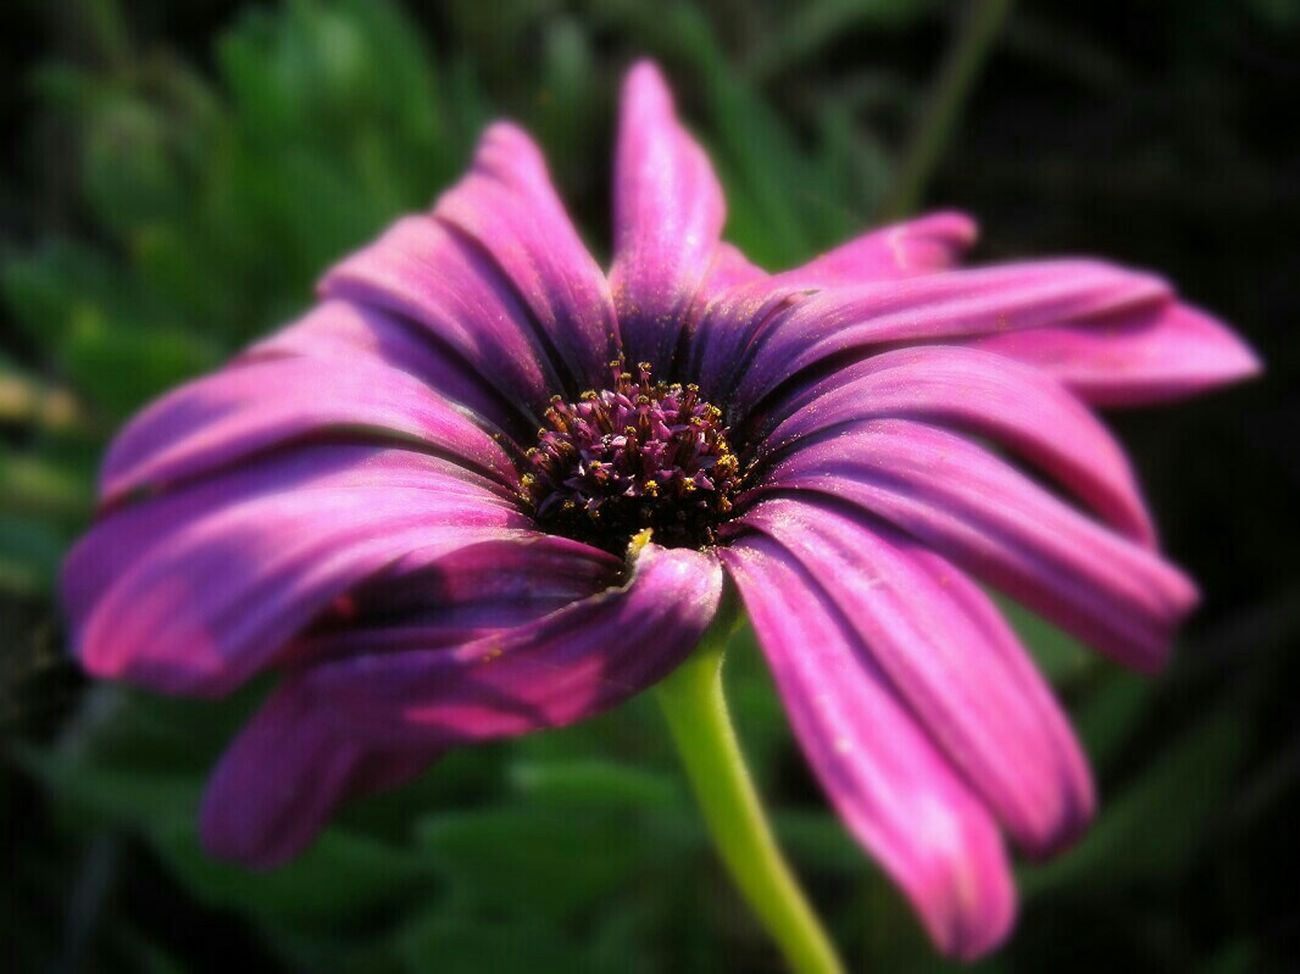 Fortheloveofcolor Taking Photos Beautiful Nature EyeEm Nature Lover EyeEm Macro Flowerlovers Macro_flower Flowers 🌷 Flowers 🌹 Purplicious